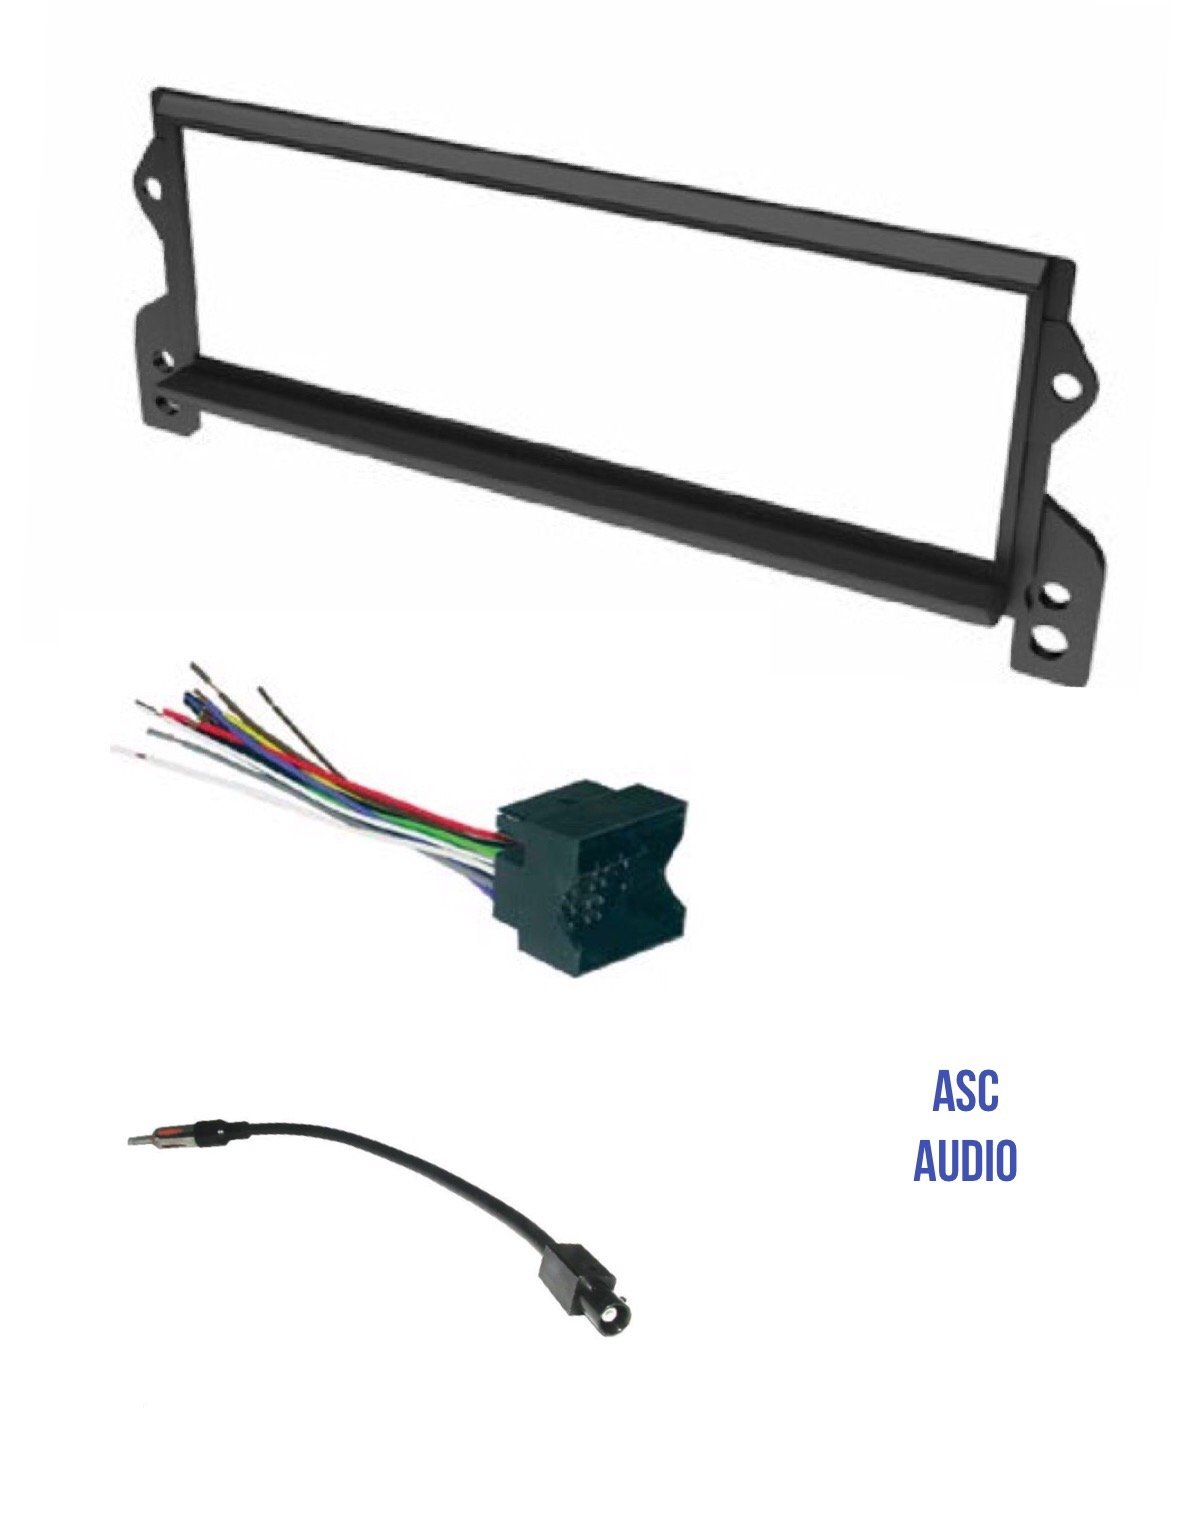 hight resolution of get quotations asc car stereo install dash kit wire harness and antenna adapter for installing a